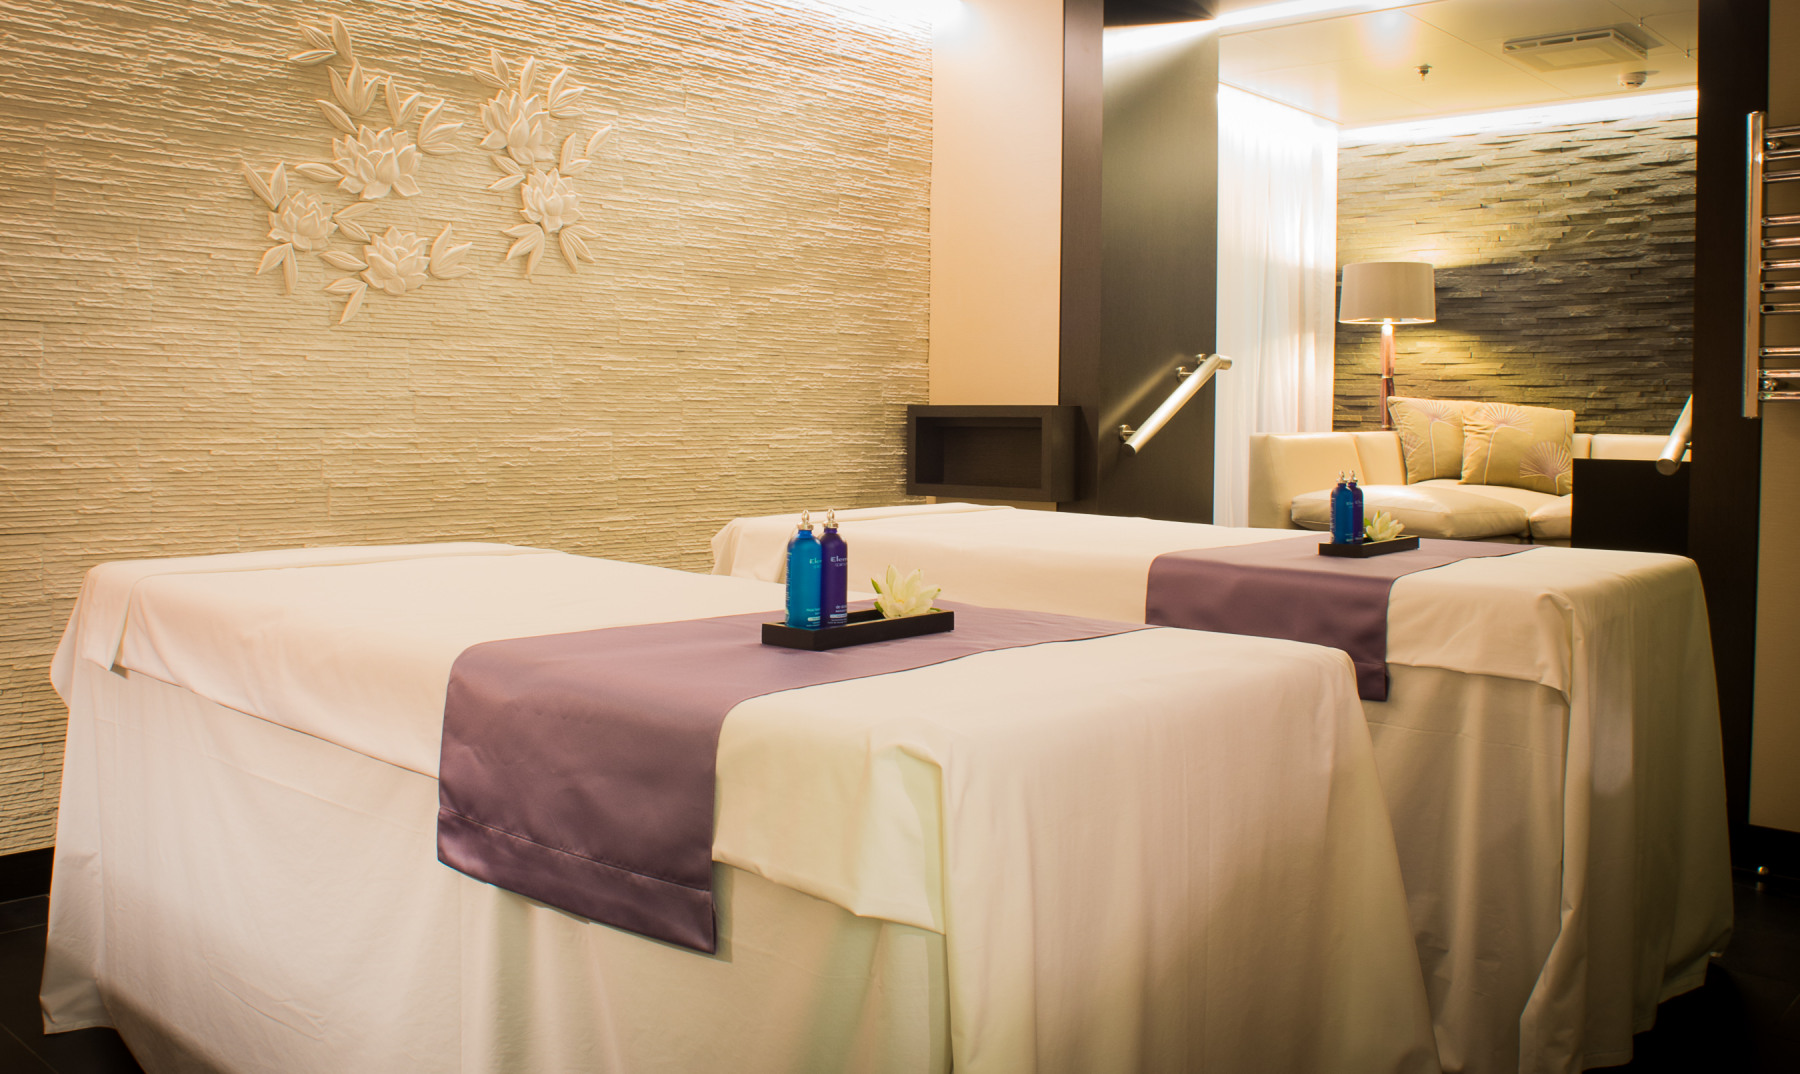 Princess Cruises Coral Class Interior lotus spa.jpg